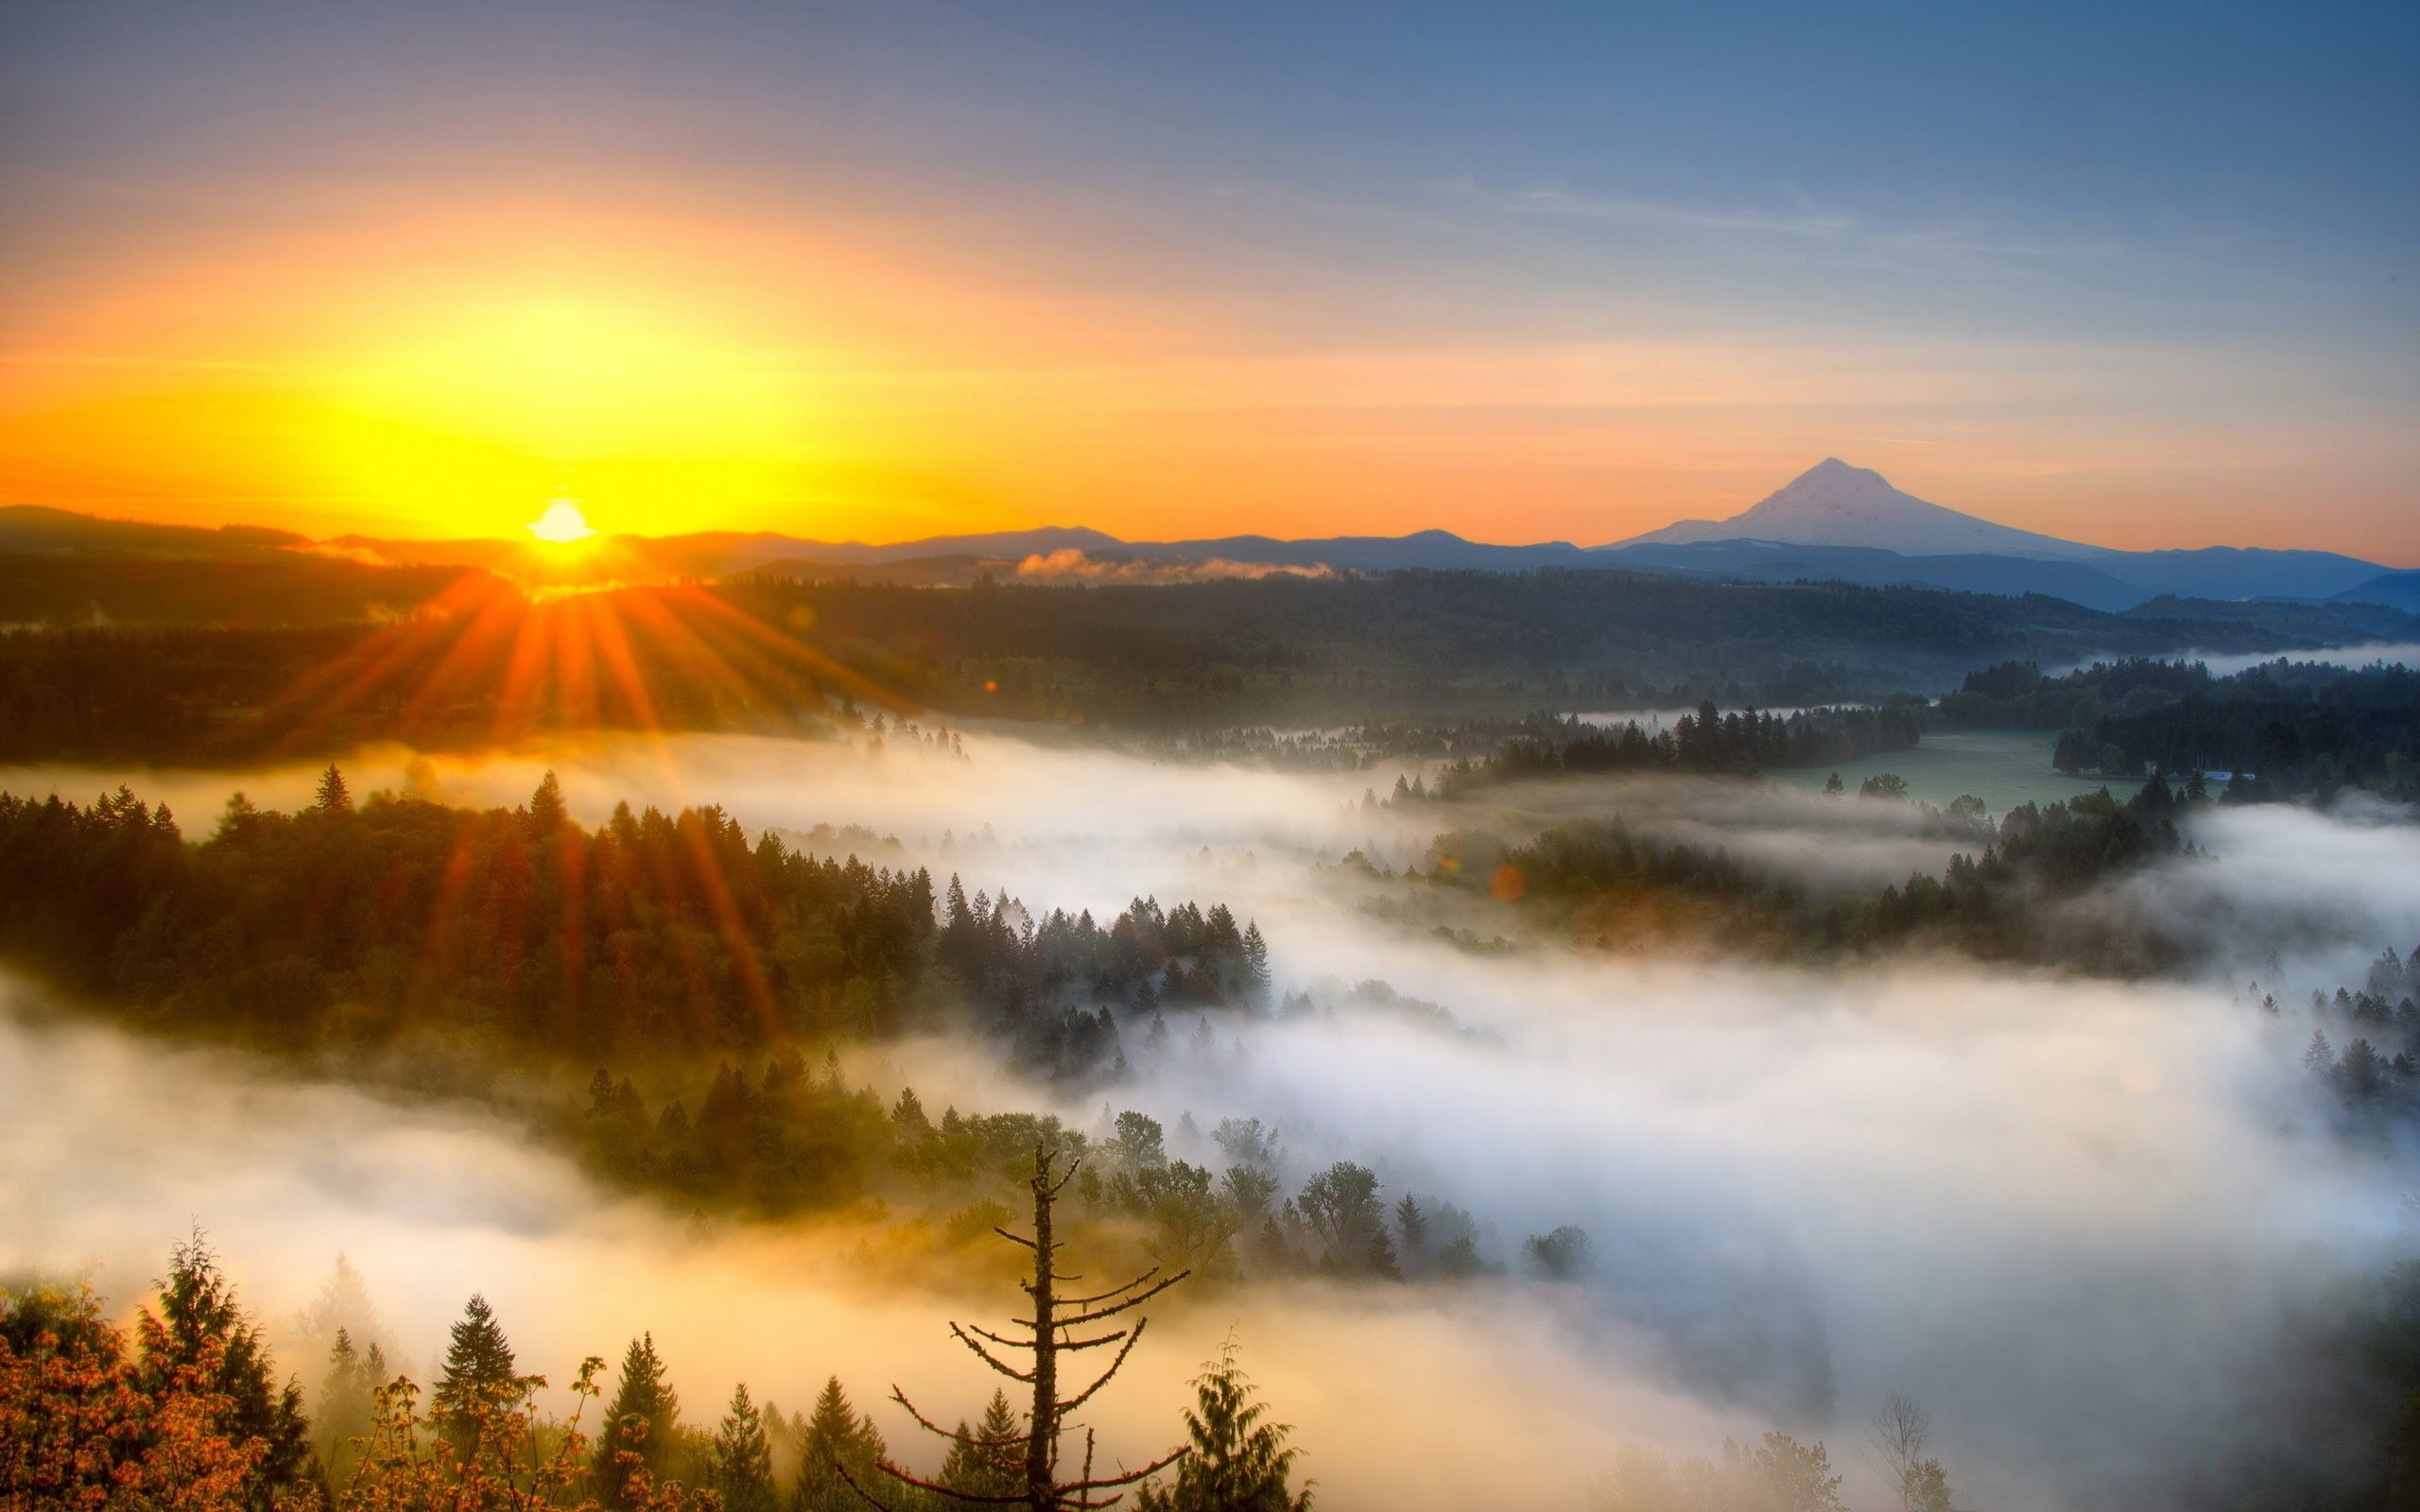 Good Morning Sunrise Wallpaper Hd : Morning sunrise mist mountain wallpaper